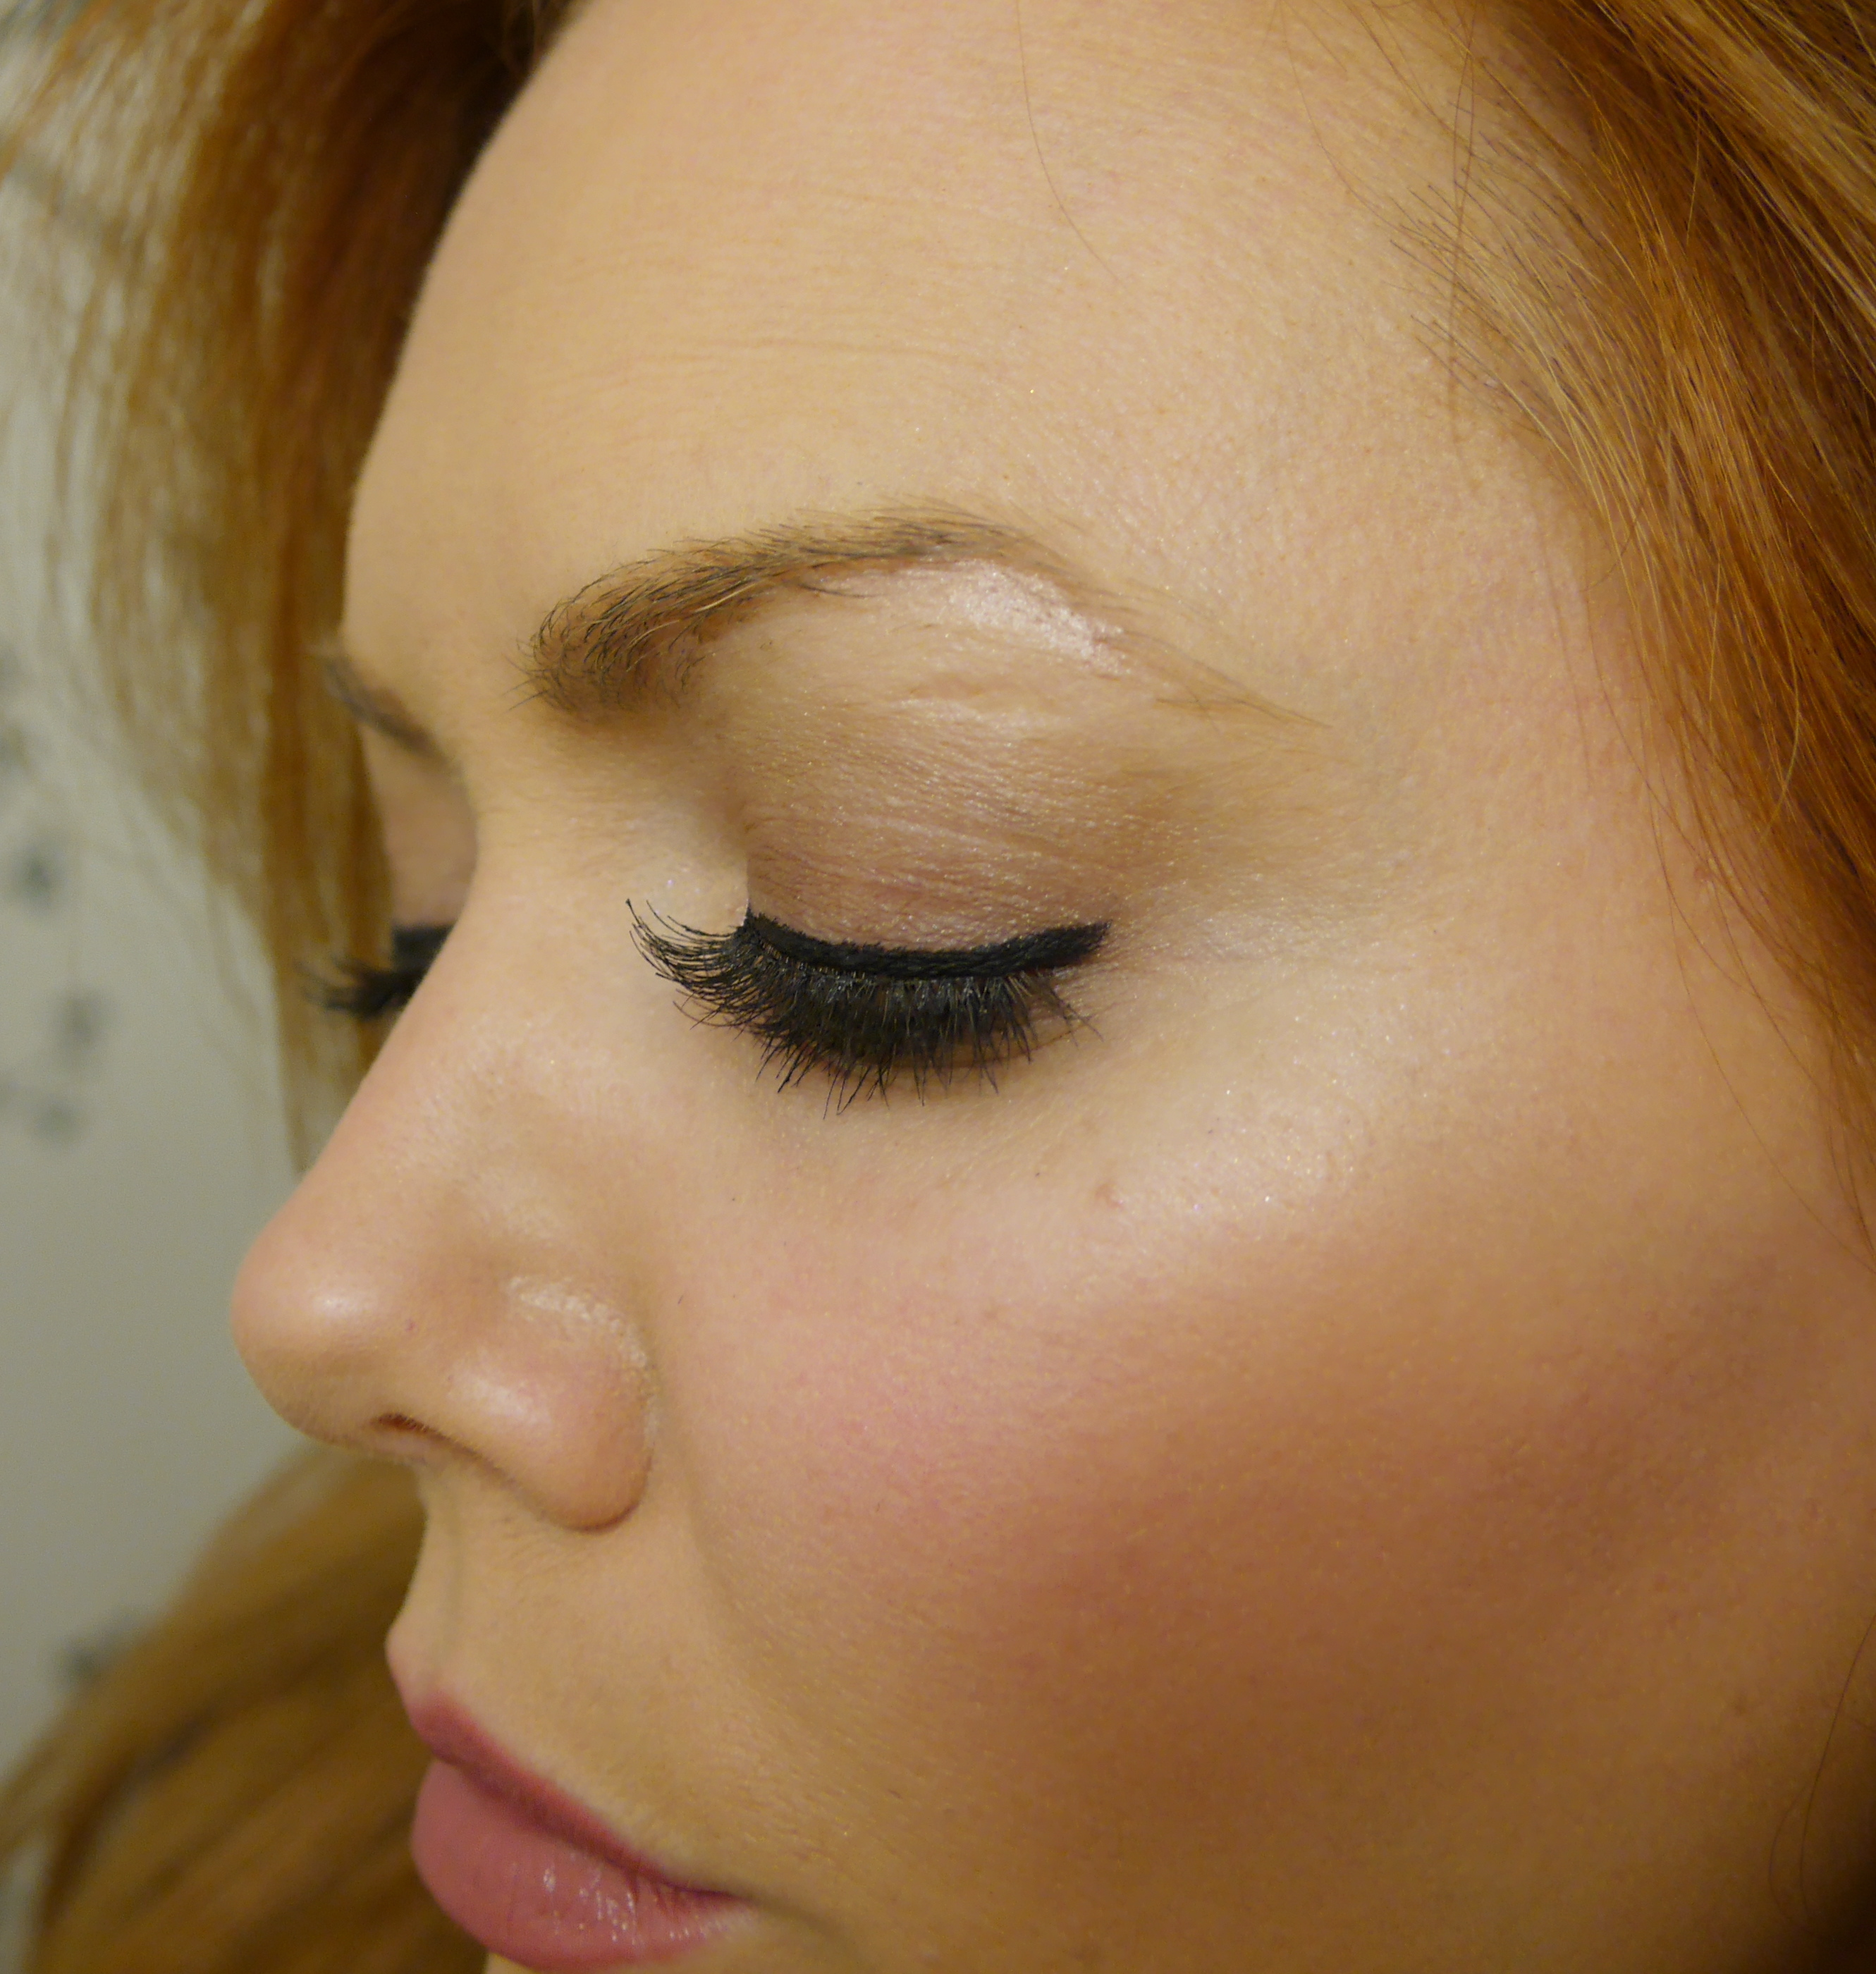 loreal-silkissime-eyeliner-black-highlighter-review-demo-swatches.jpeg